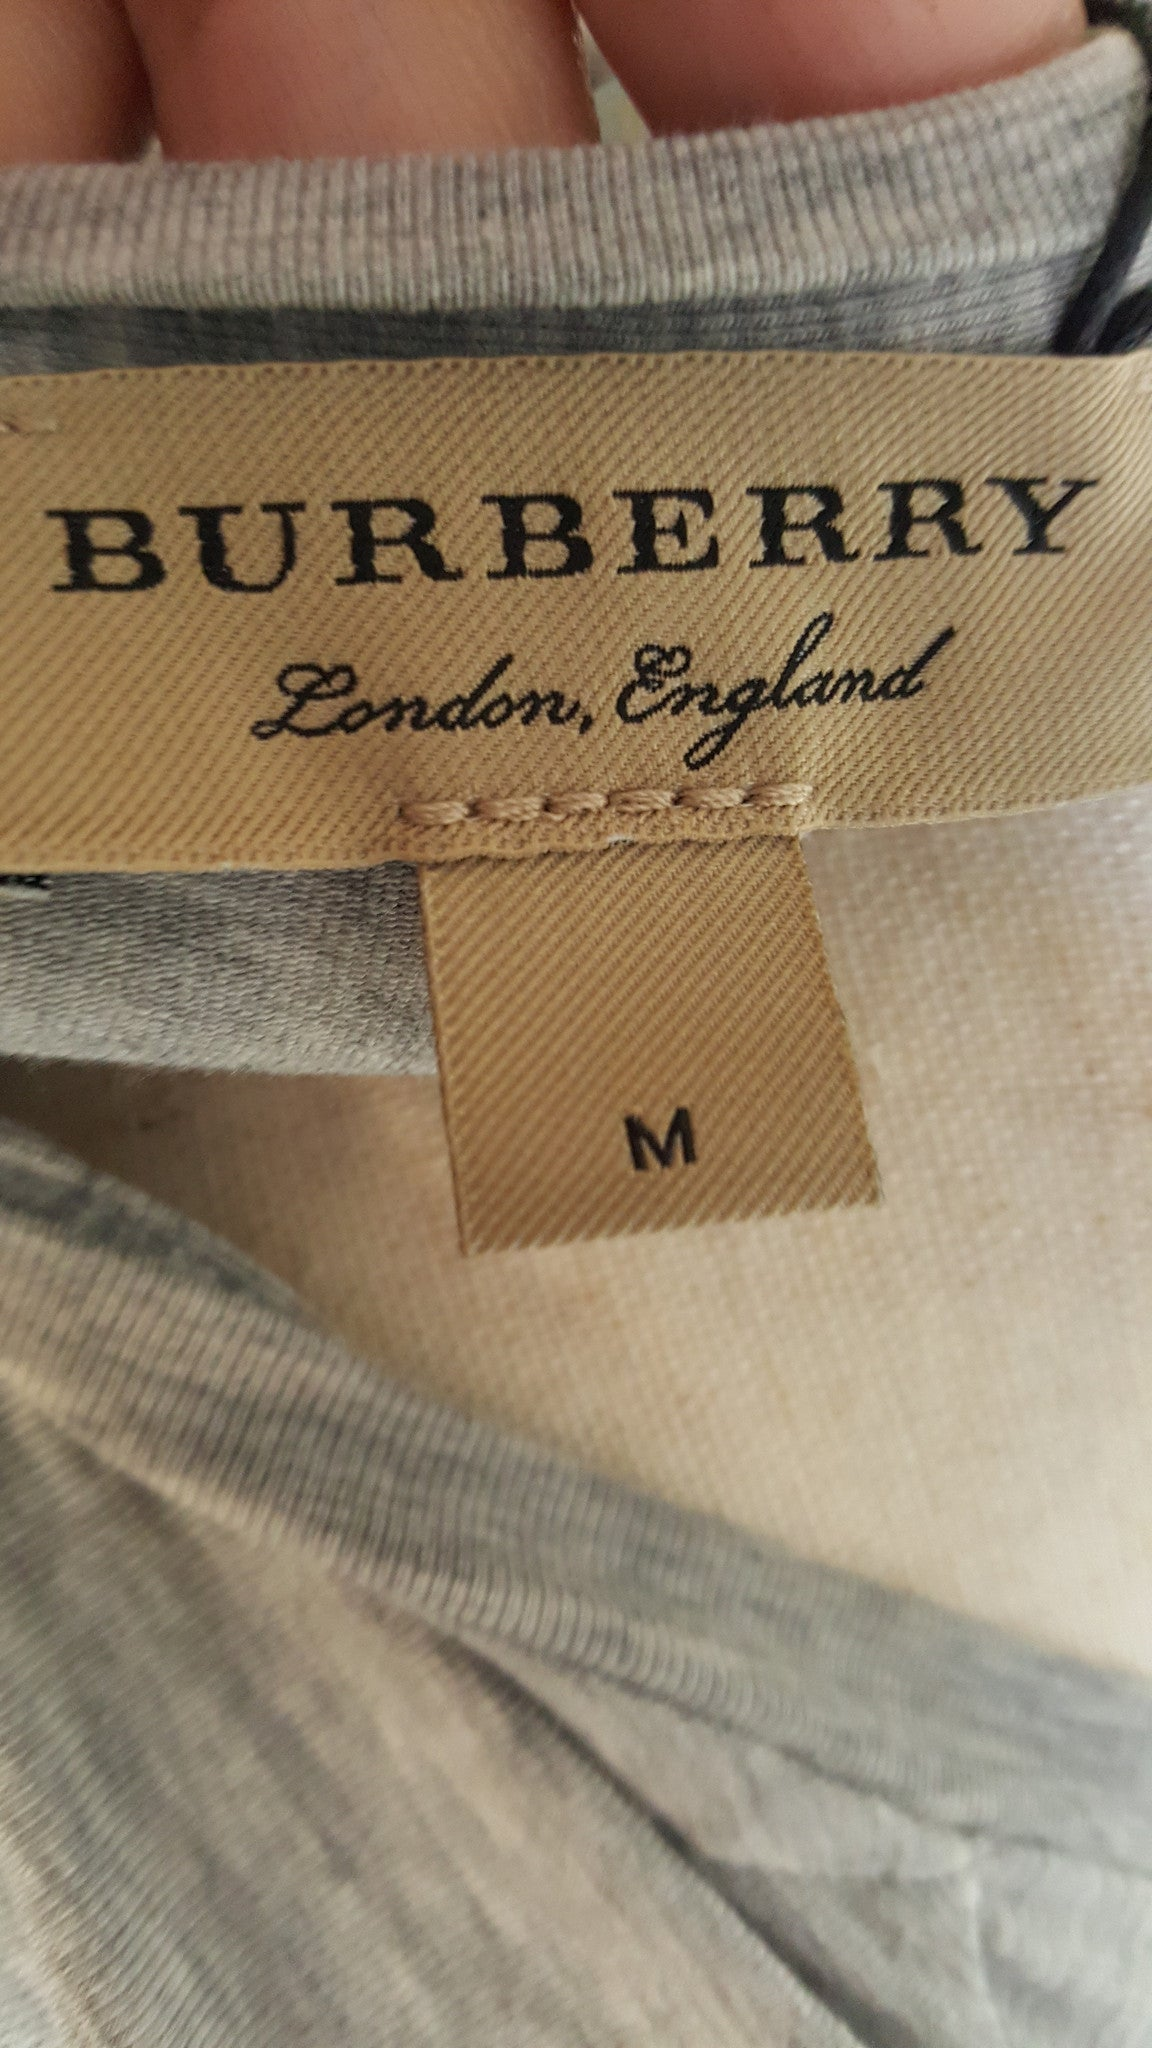 BURBERRY LONDON NOVA CHECK CUFF 3/4 SLEEVE TOP - SIZE MEDIUM - PALE GREY